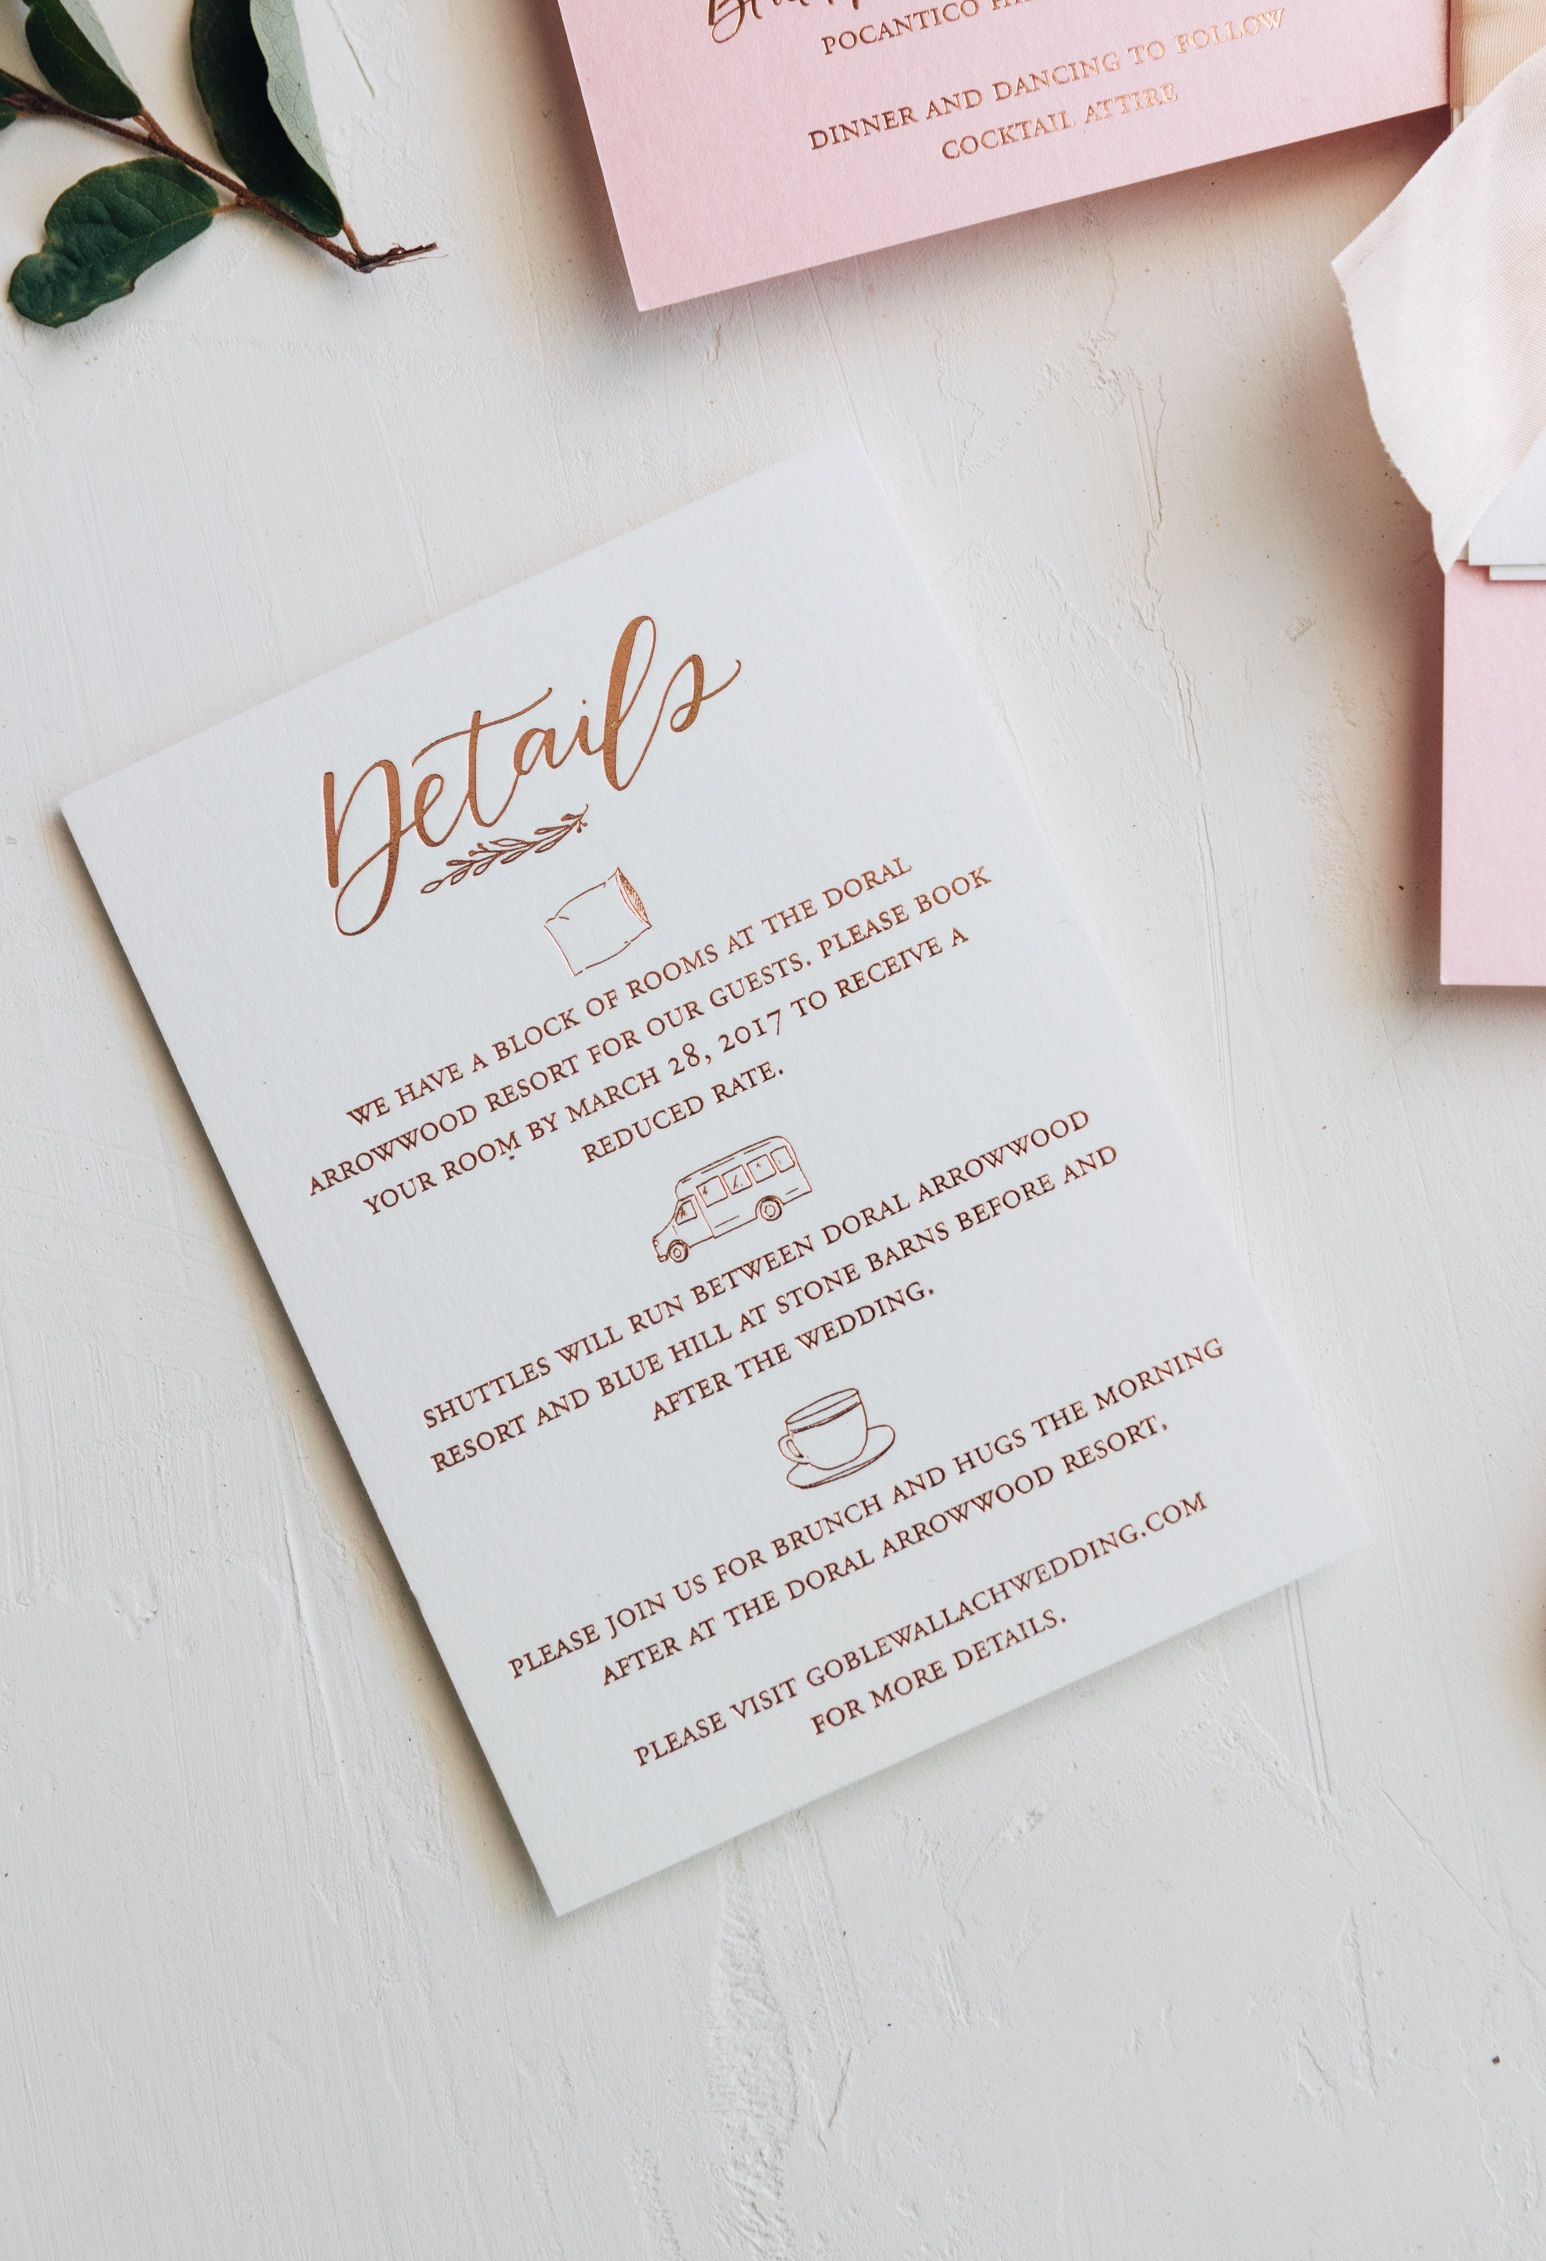 Details card ideas from Bright Room Studio